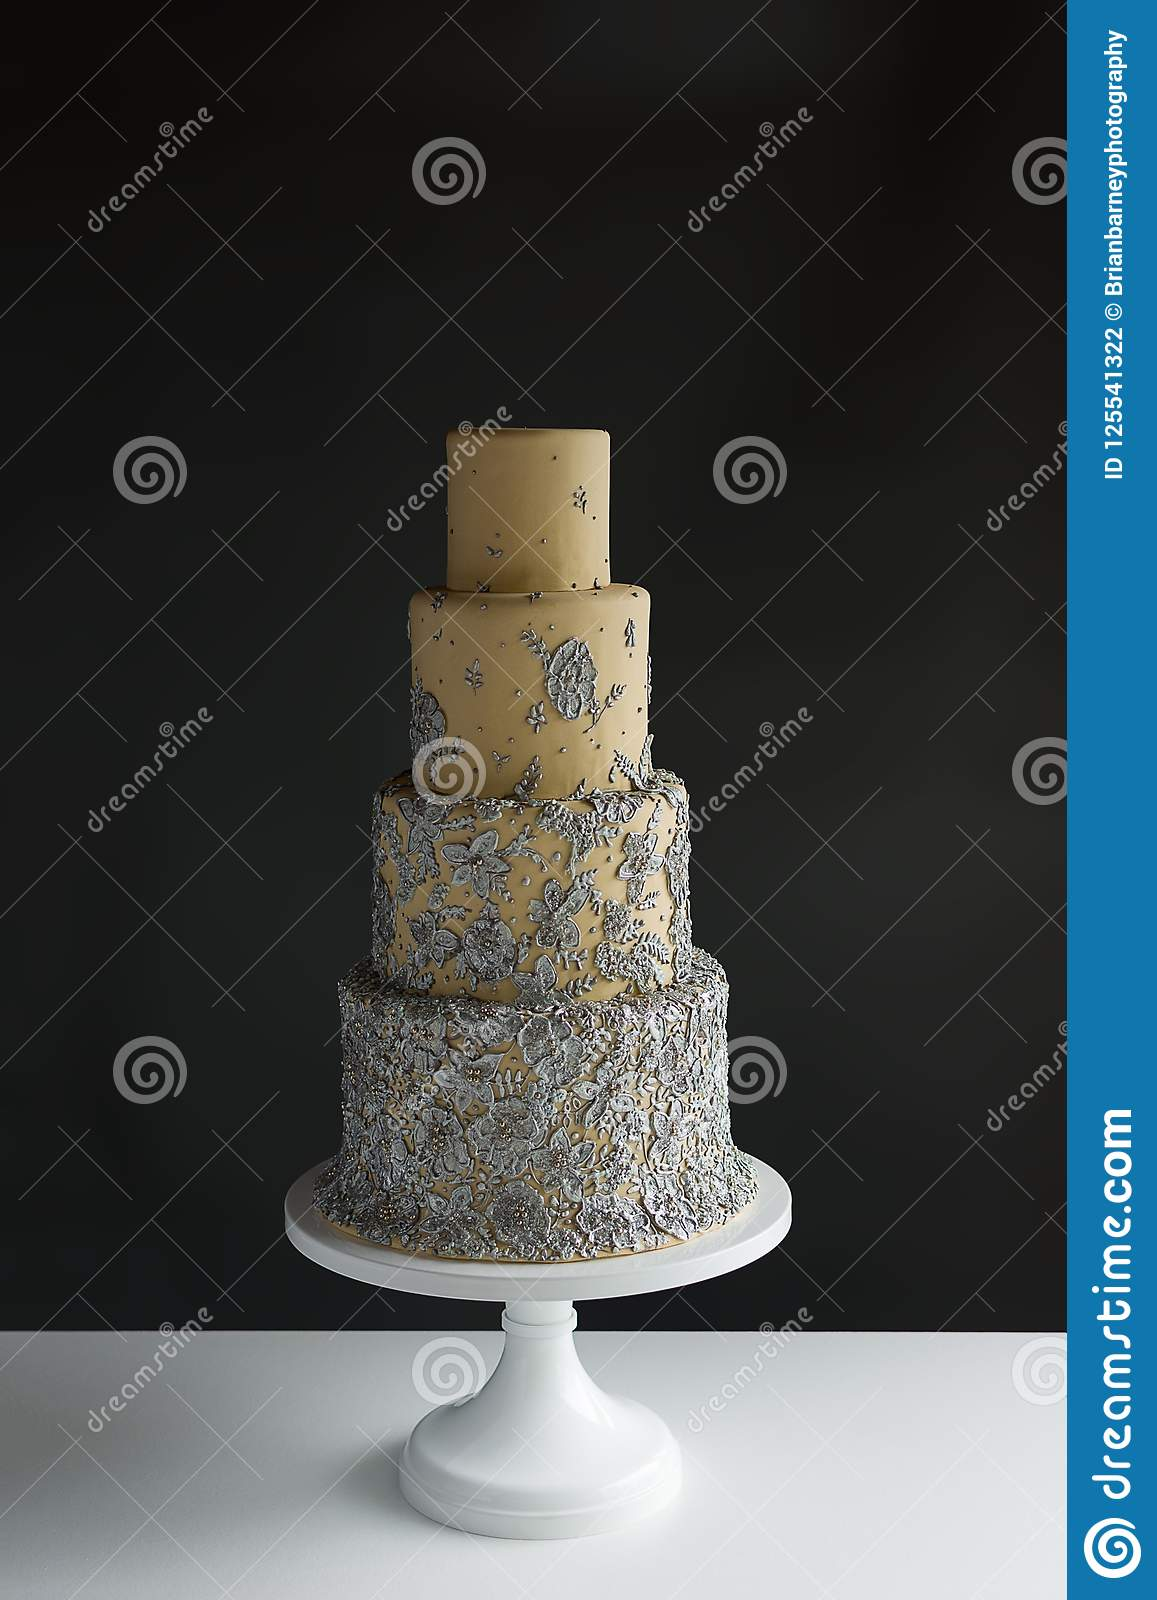 4 Tier Wedding Cake With Silver Floral Accents On White Table With With Dark Grey Background And Copy Space Stock Photo Image Of Marble Beautiful 125541322